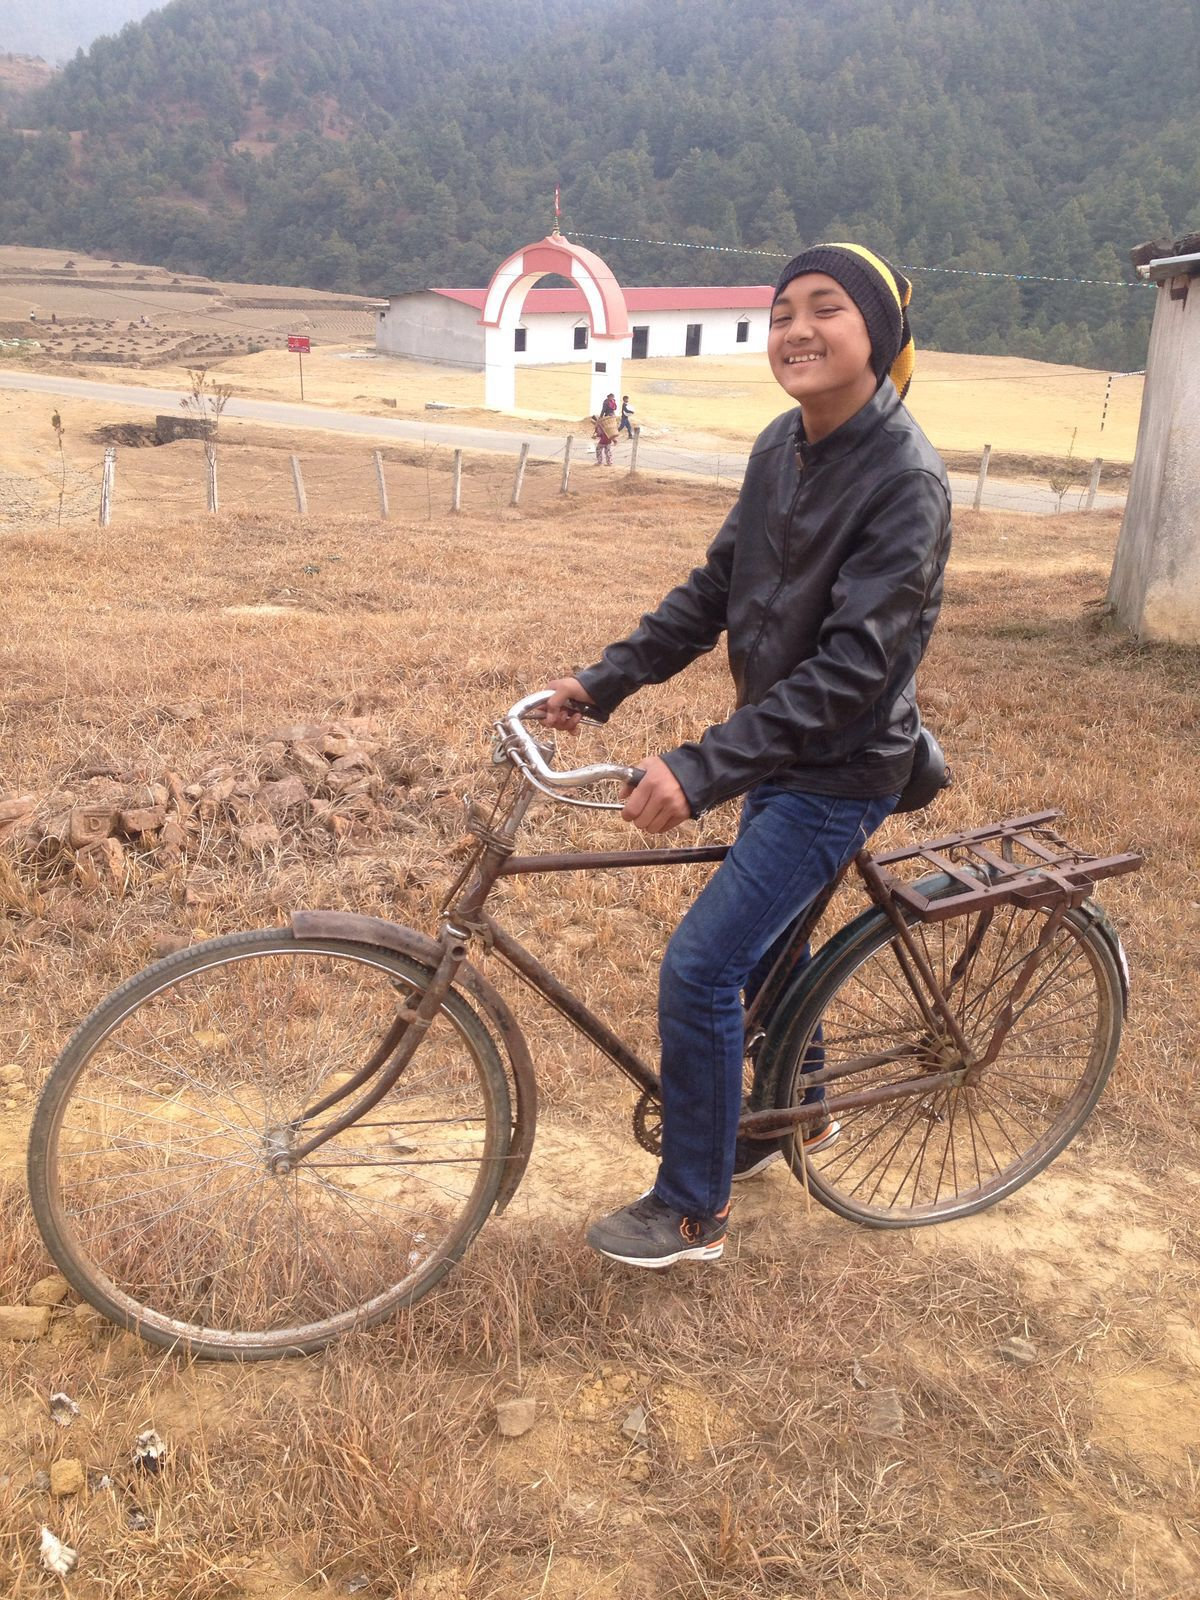 Photo of a teenage boy happily riding a rusty bicycle.